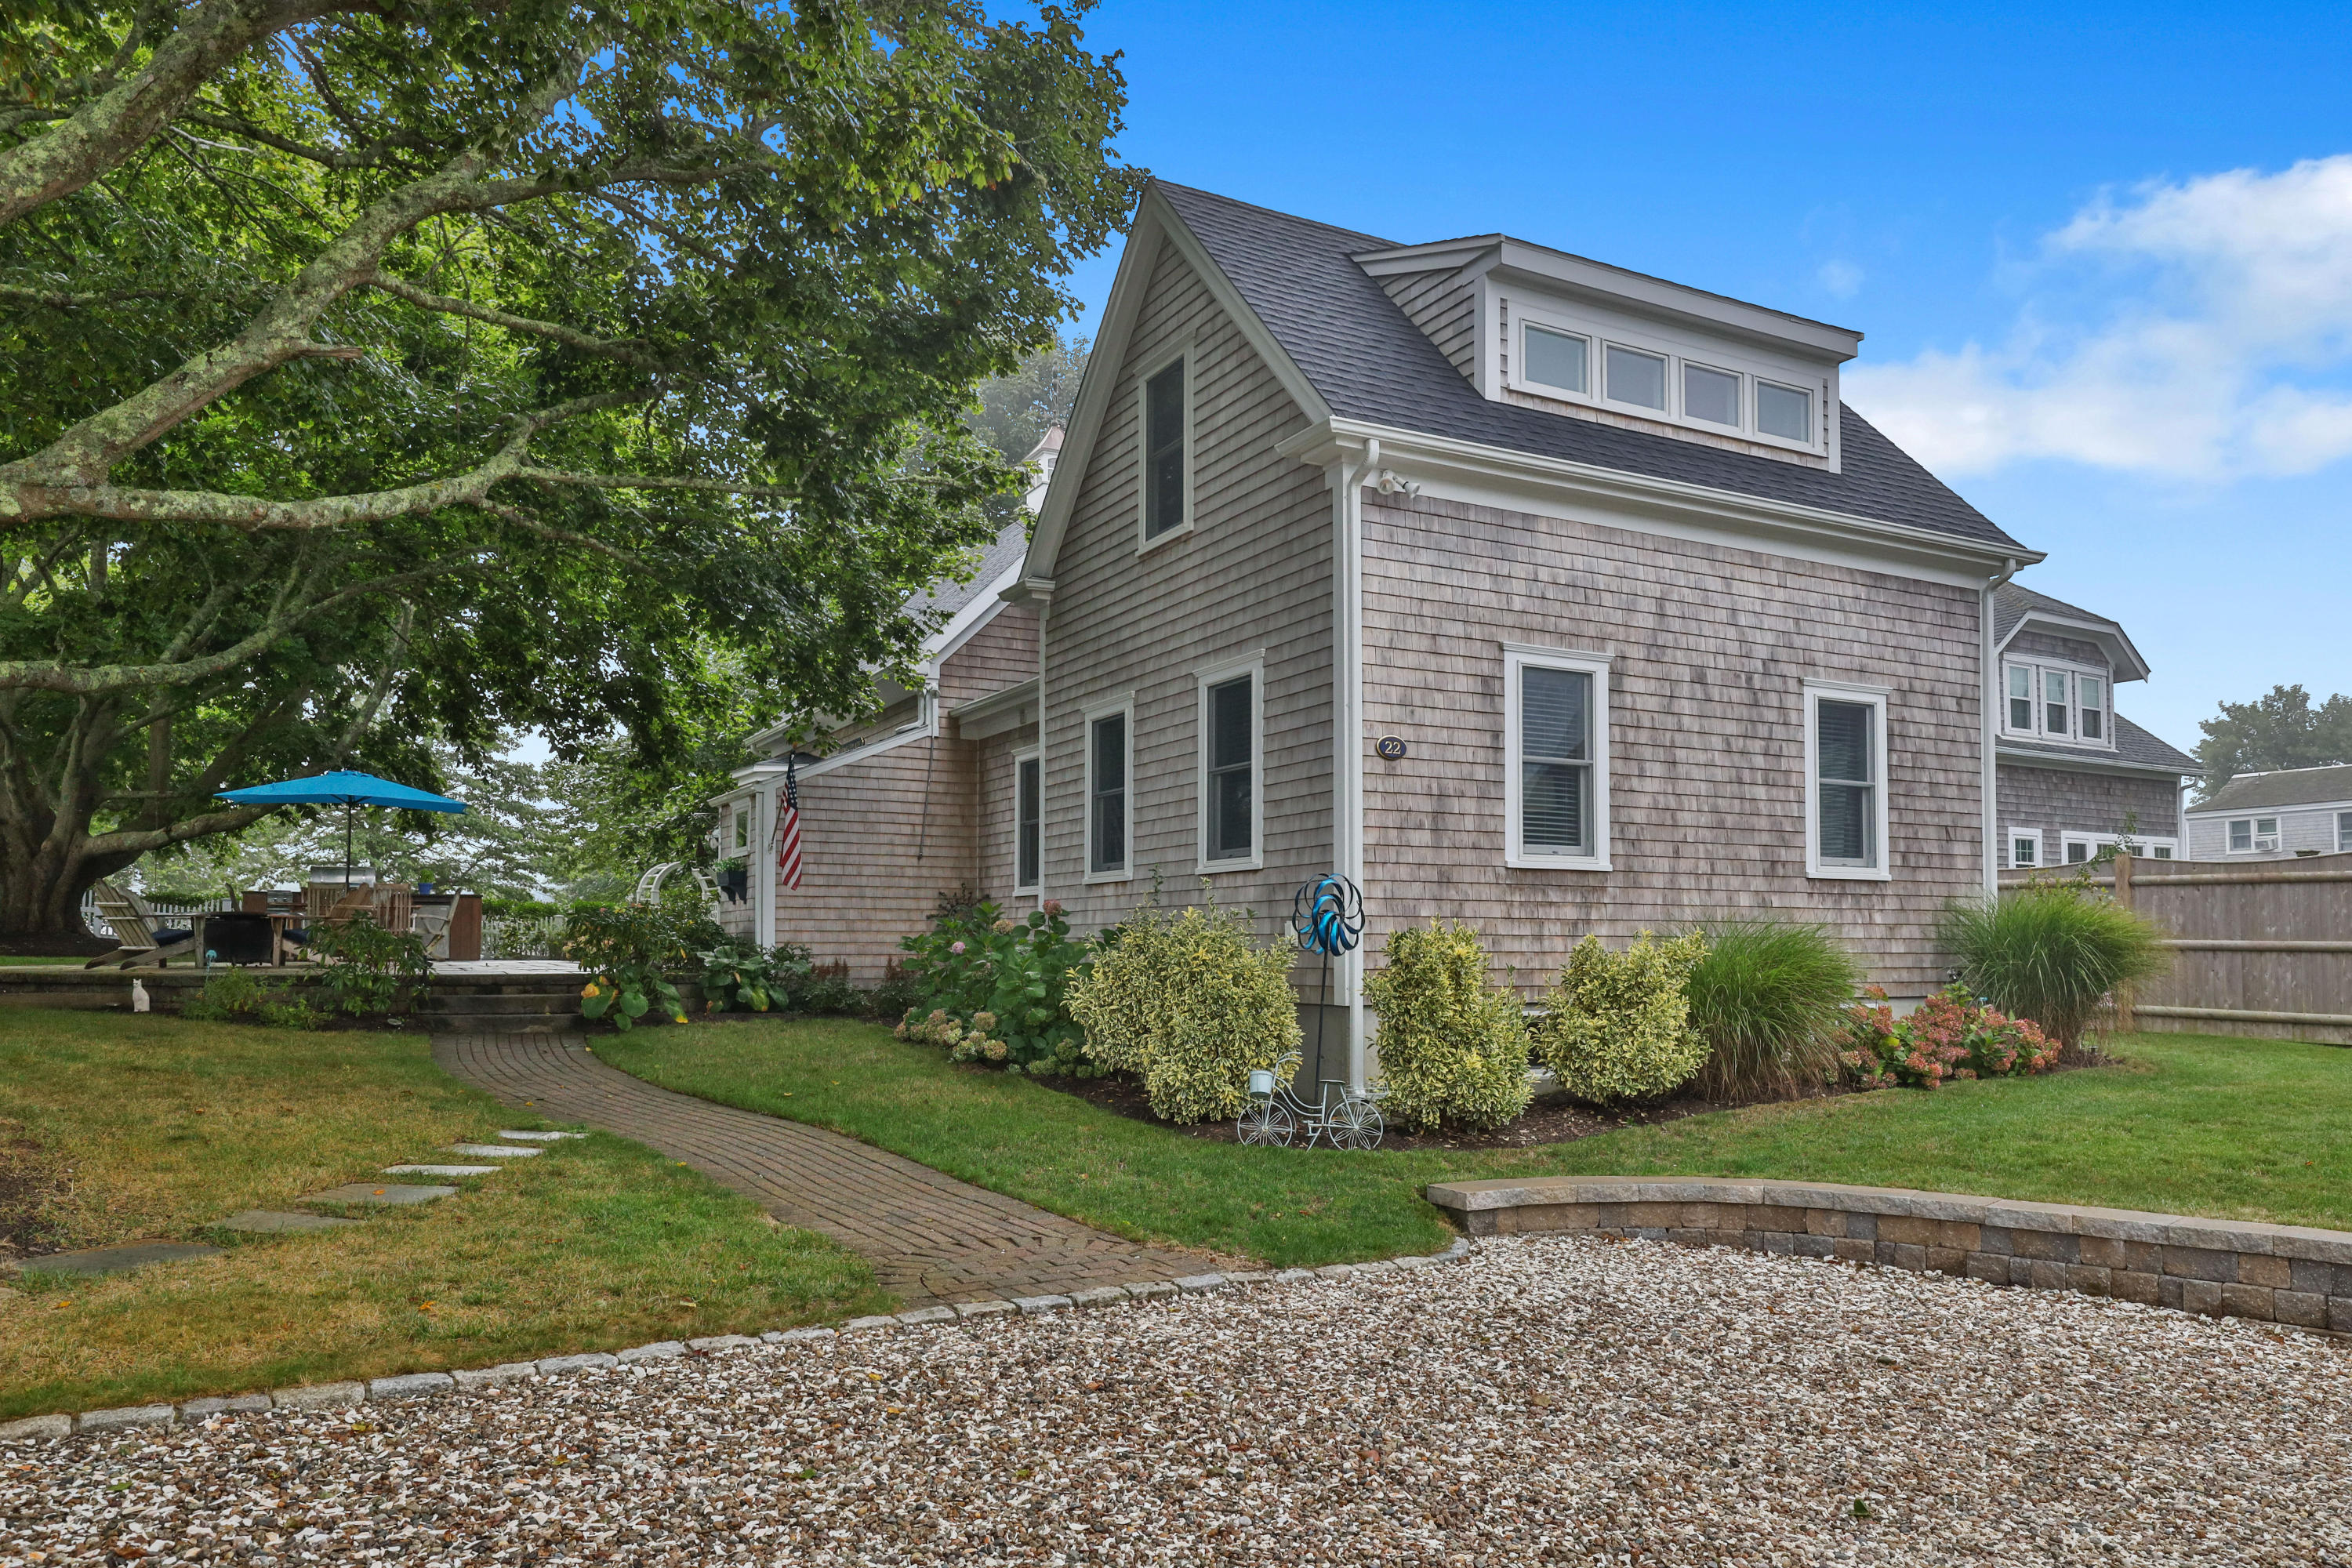 click to view more details 22 Veterans Field Road, Chatham, MA 02633